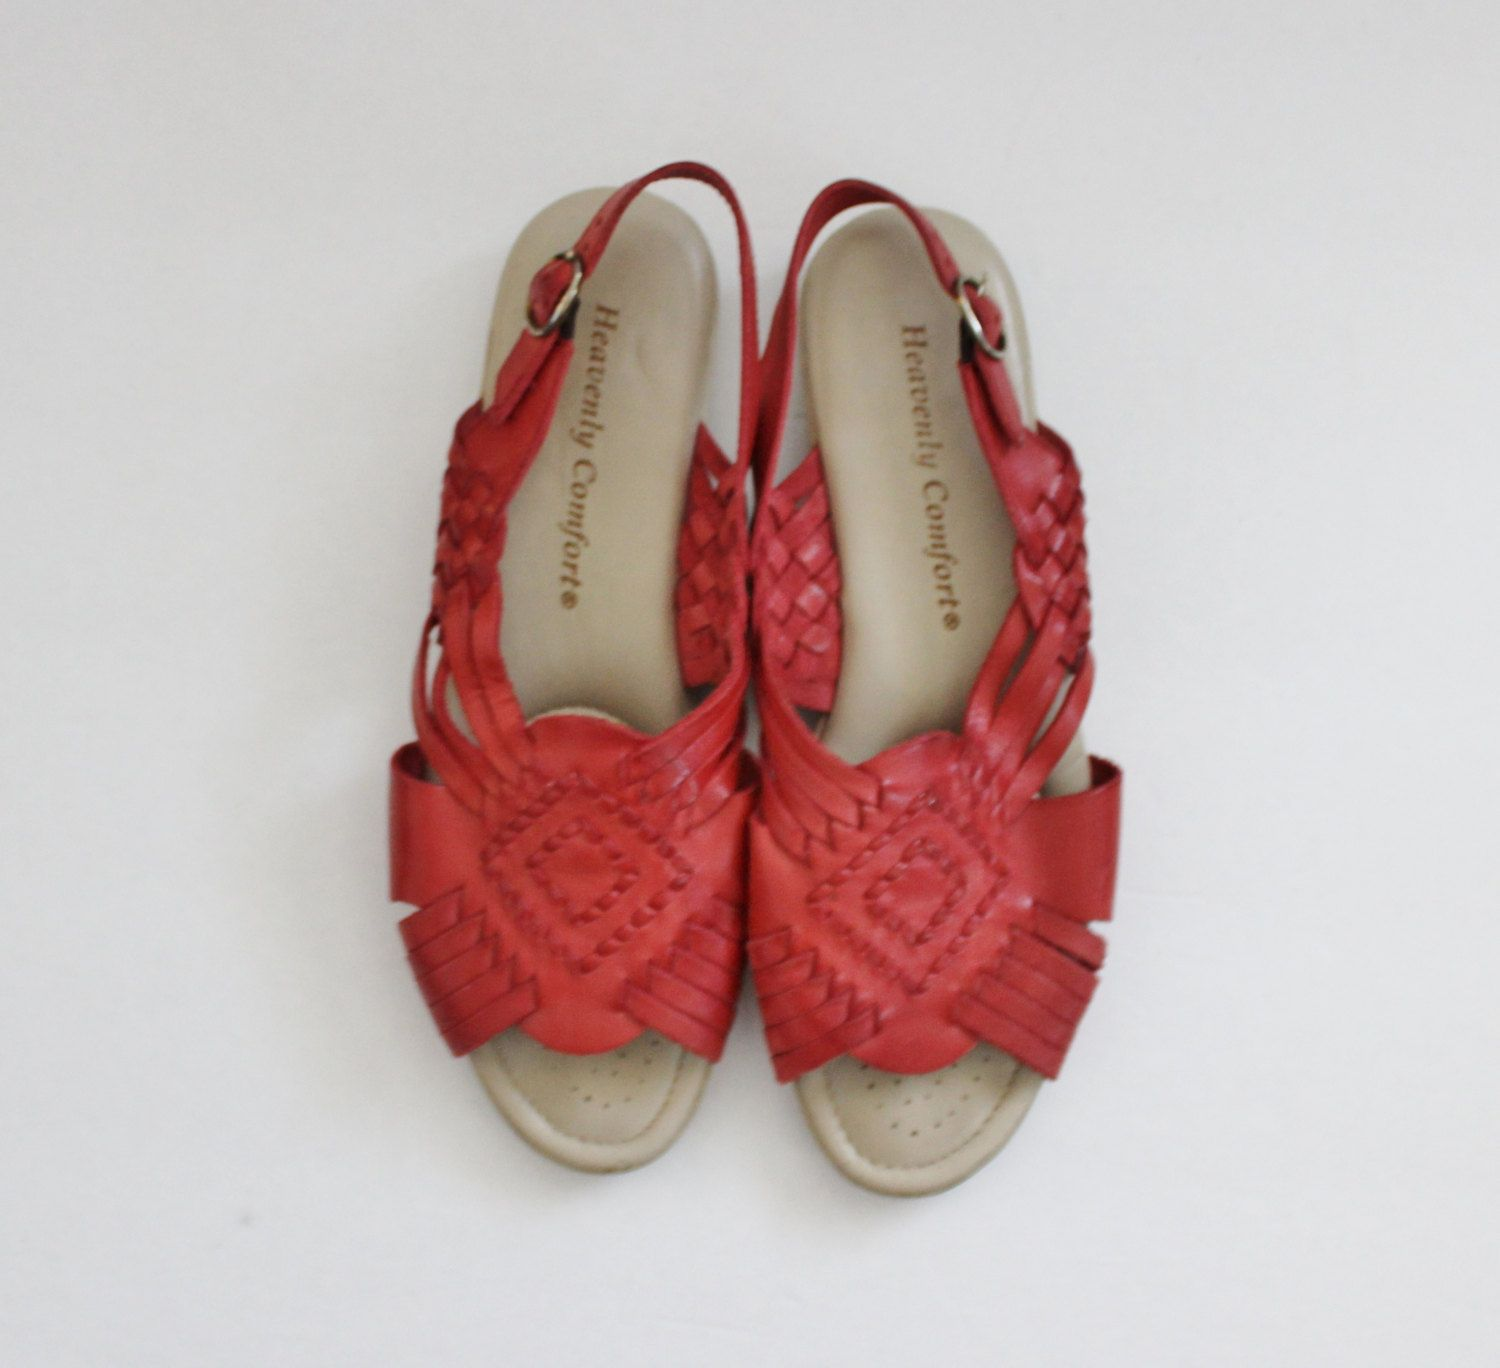 Womens sandals etsy - Vintage 80s Red Woven Leather Huarache Flat Sandals Women 8m Heavenly Comfort